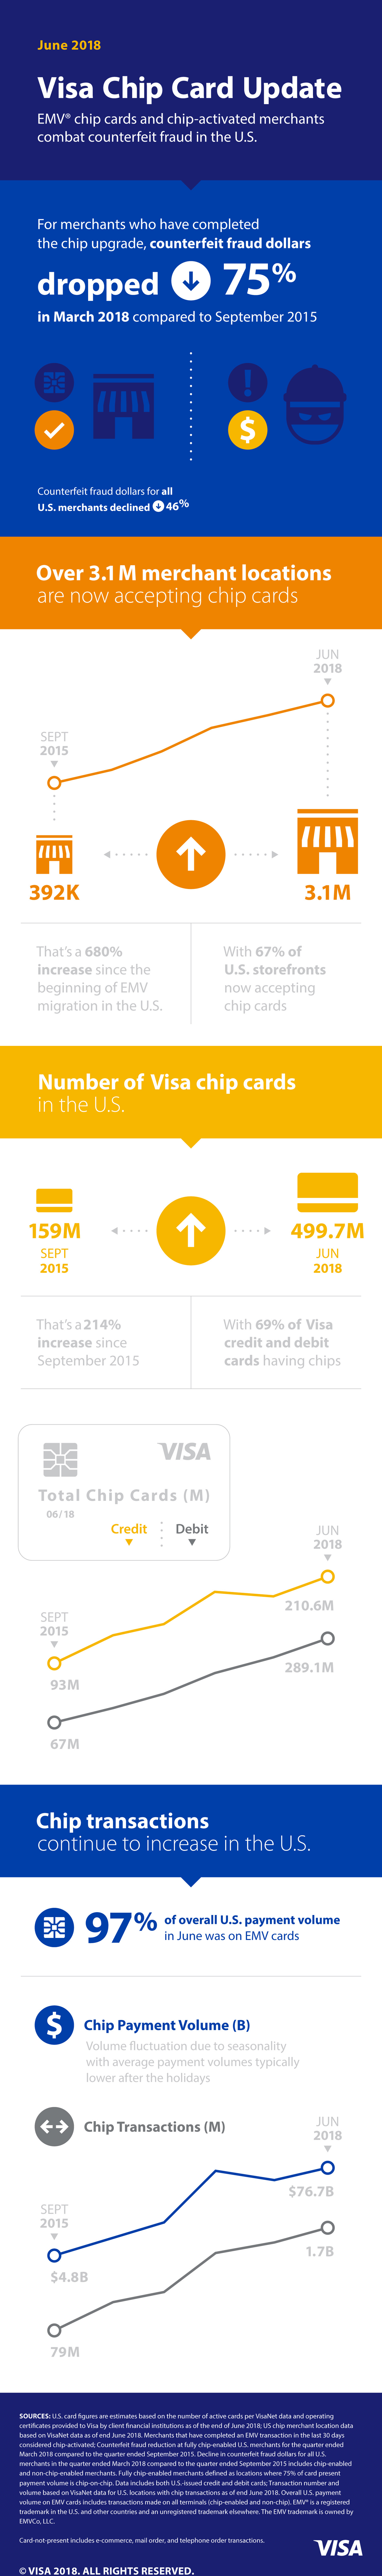 Counterfeit fraud at US EMV-enabled merchants down